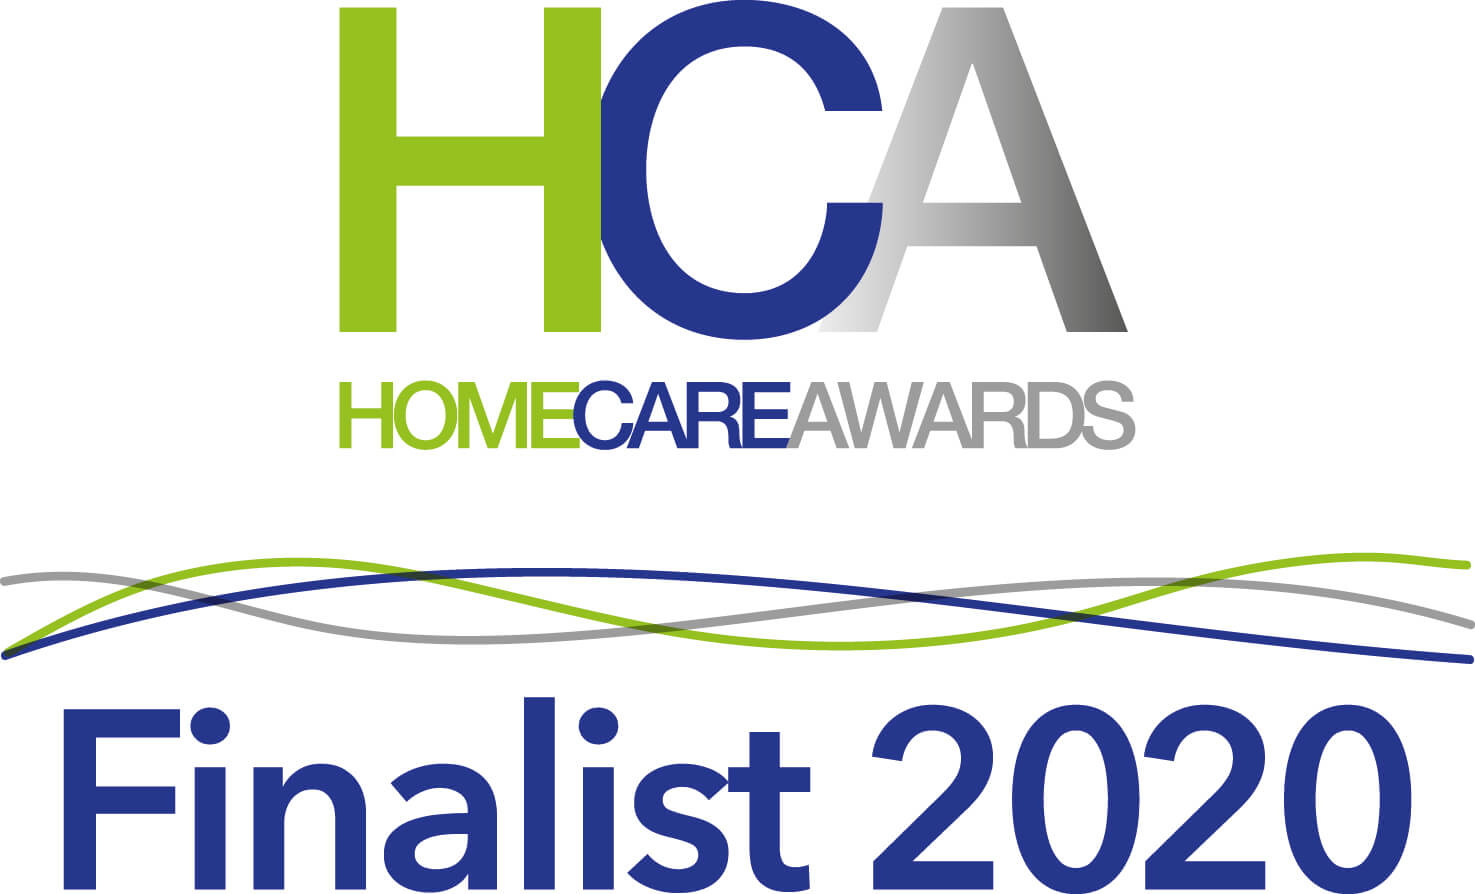 Home Care Awards 2020